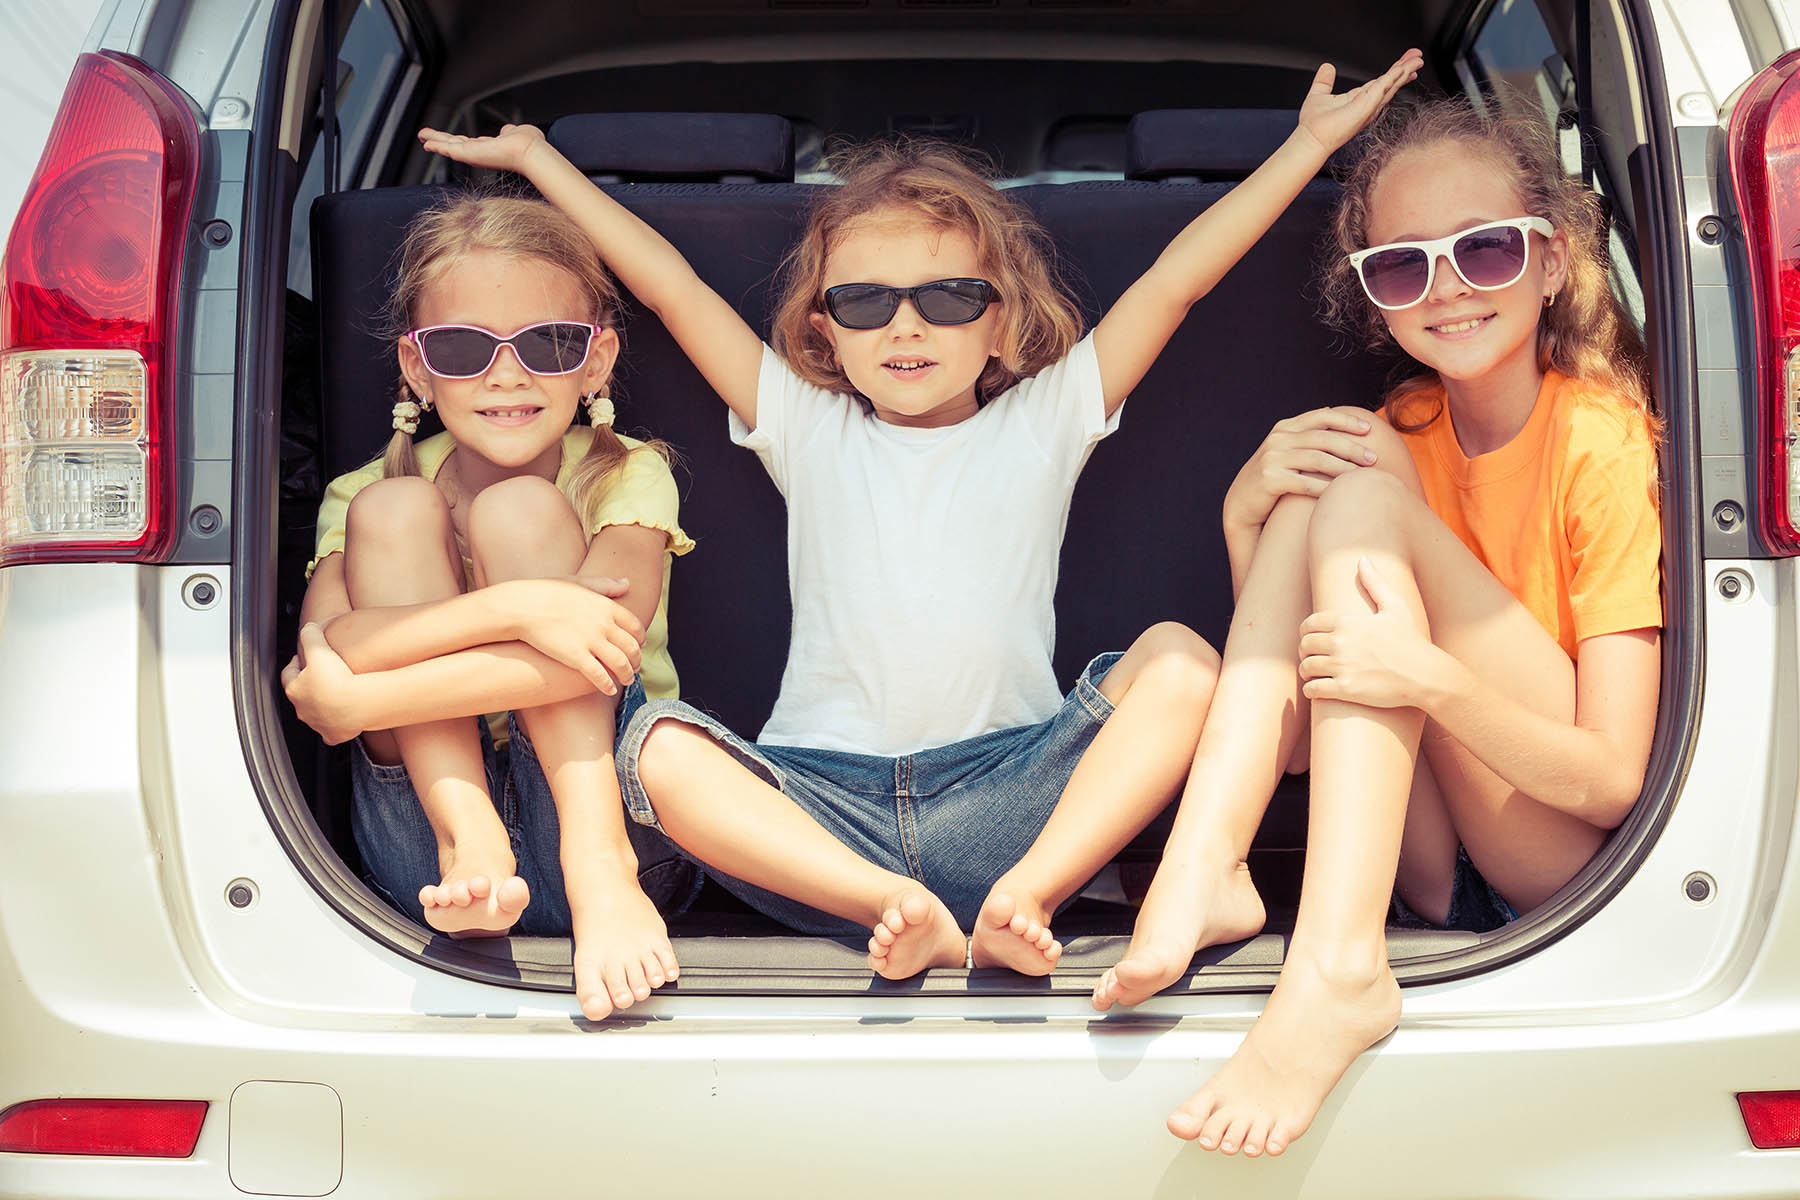 Kids in a car summertime